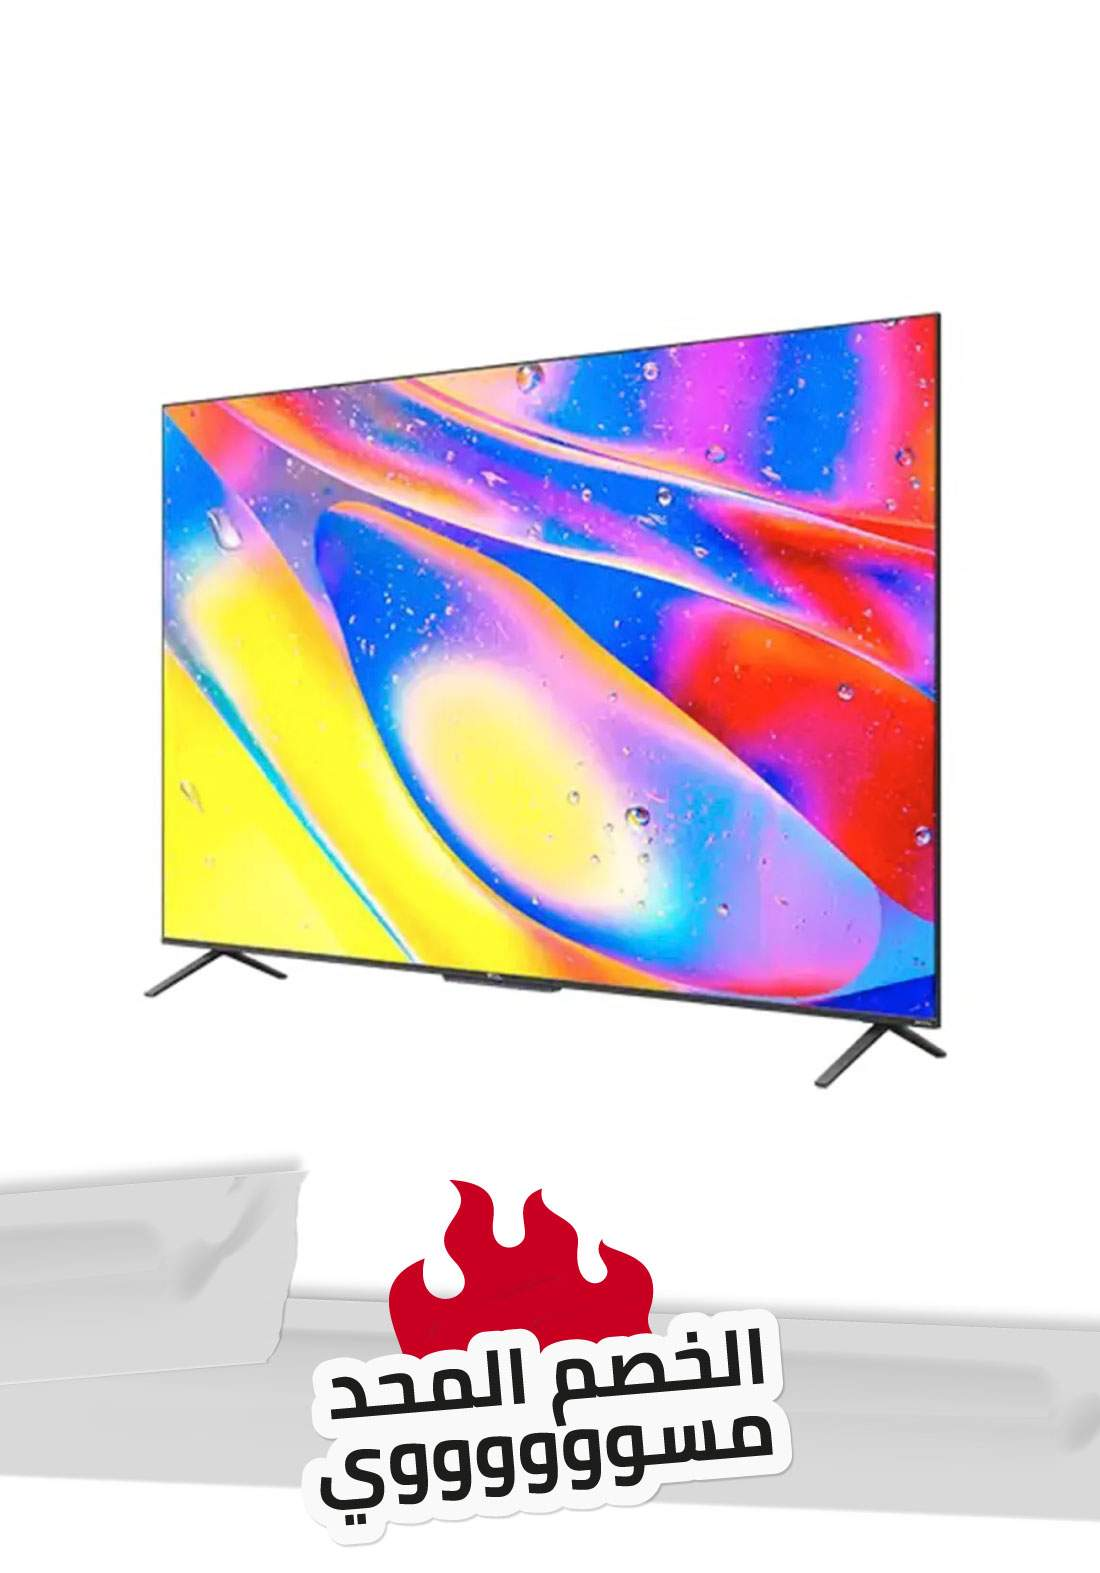 TC 55C725 L Android TV -55 Inch with free Gift TCL S200 True Wireless Earbuds  شاشة مع هدية سماعة لا سلكية